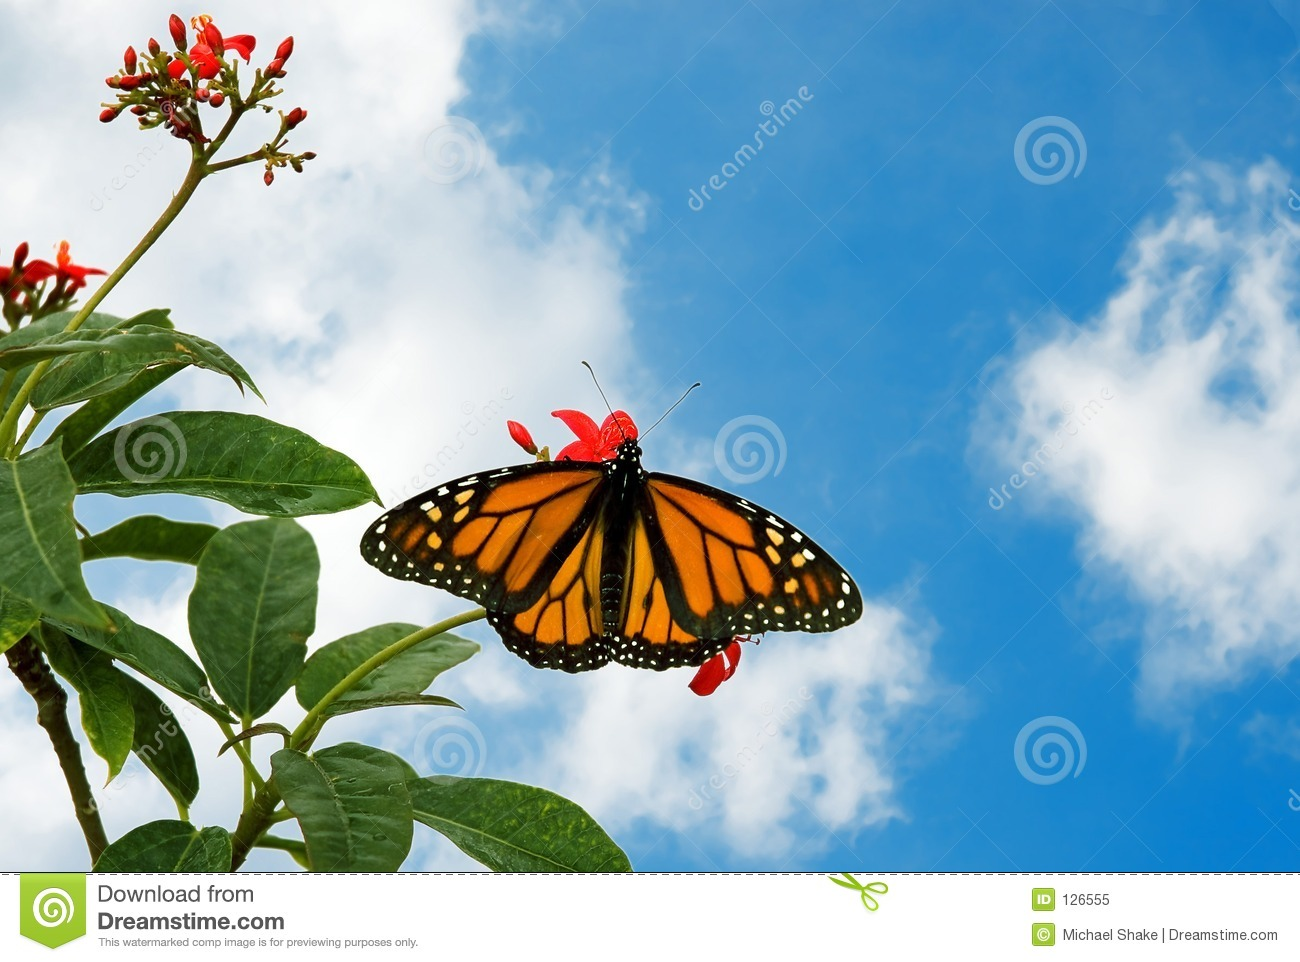 9 a butterfly